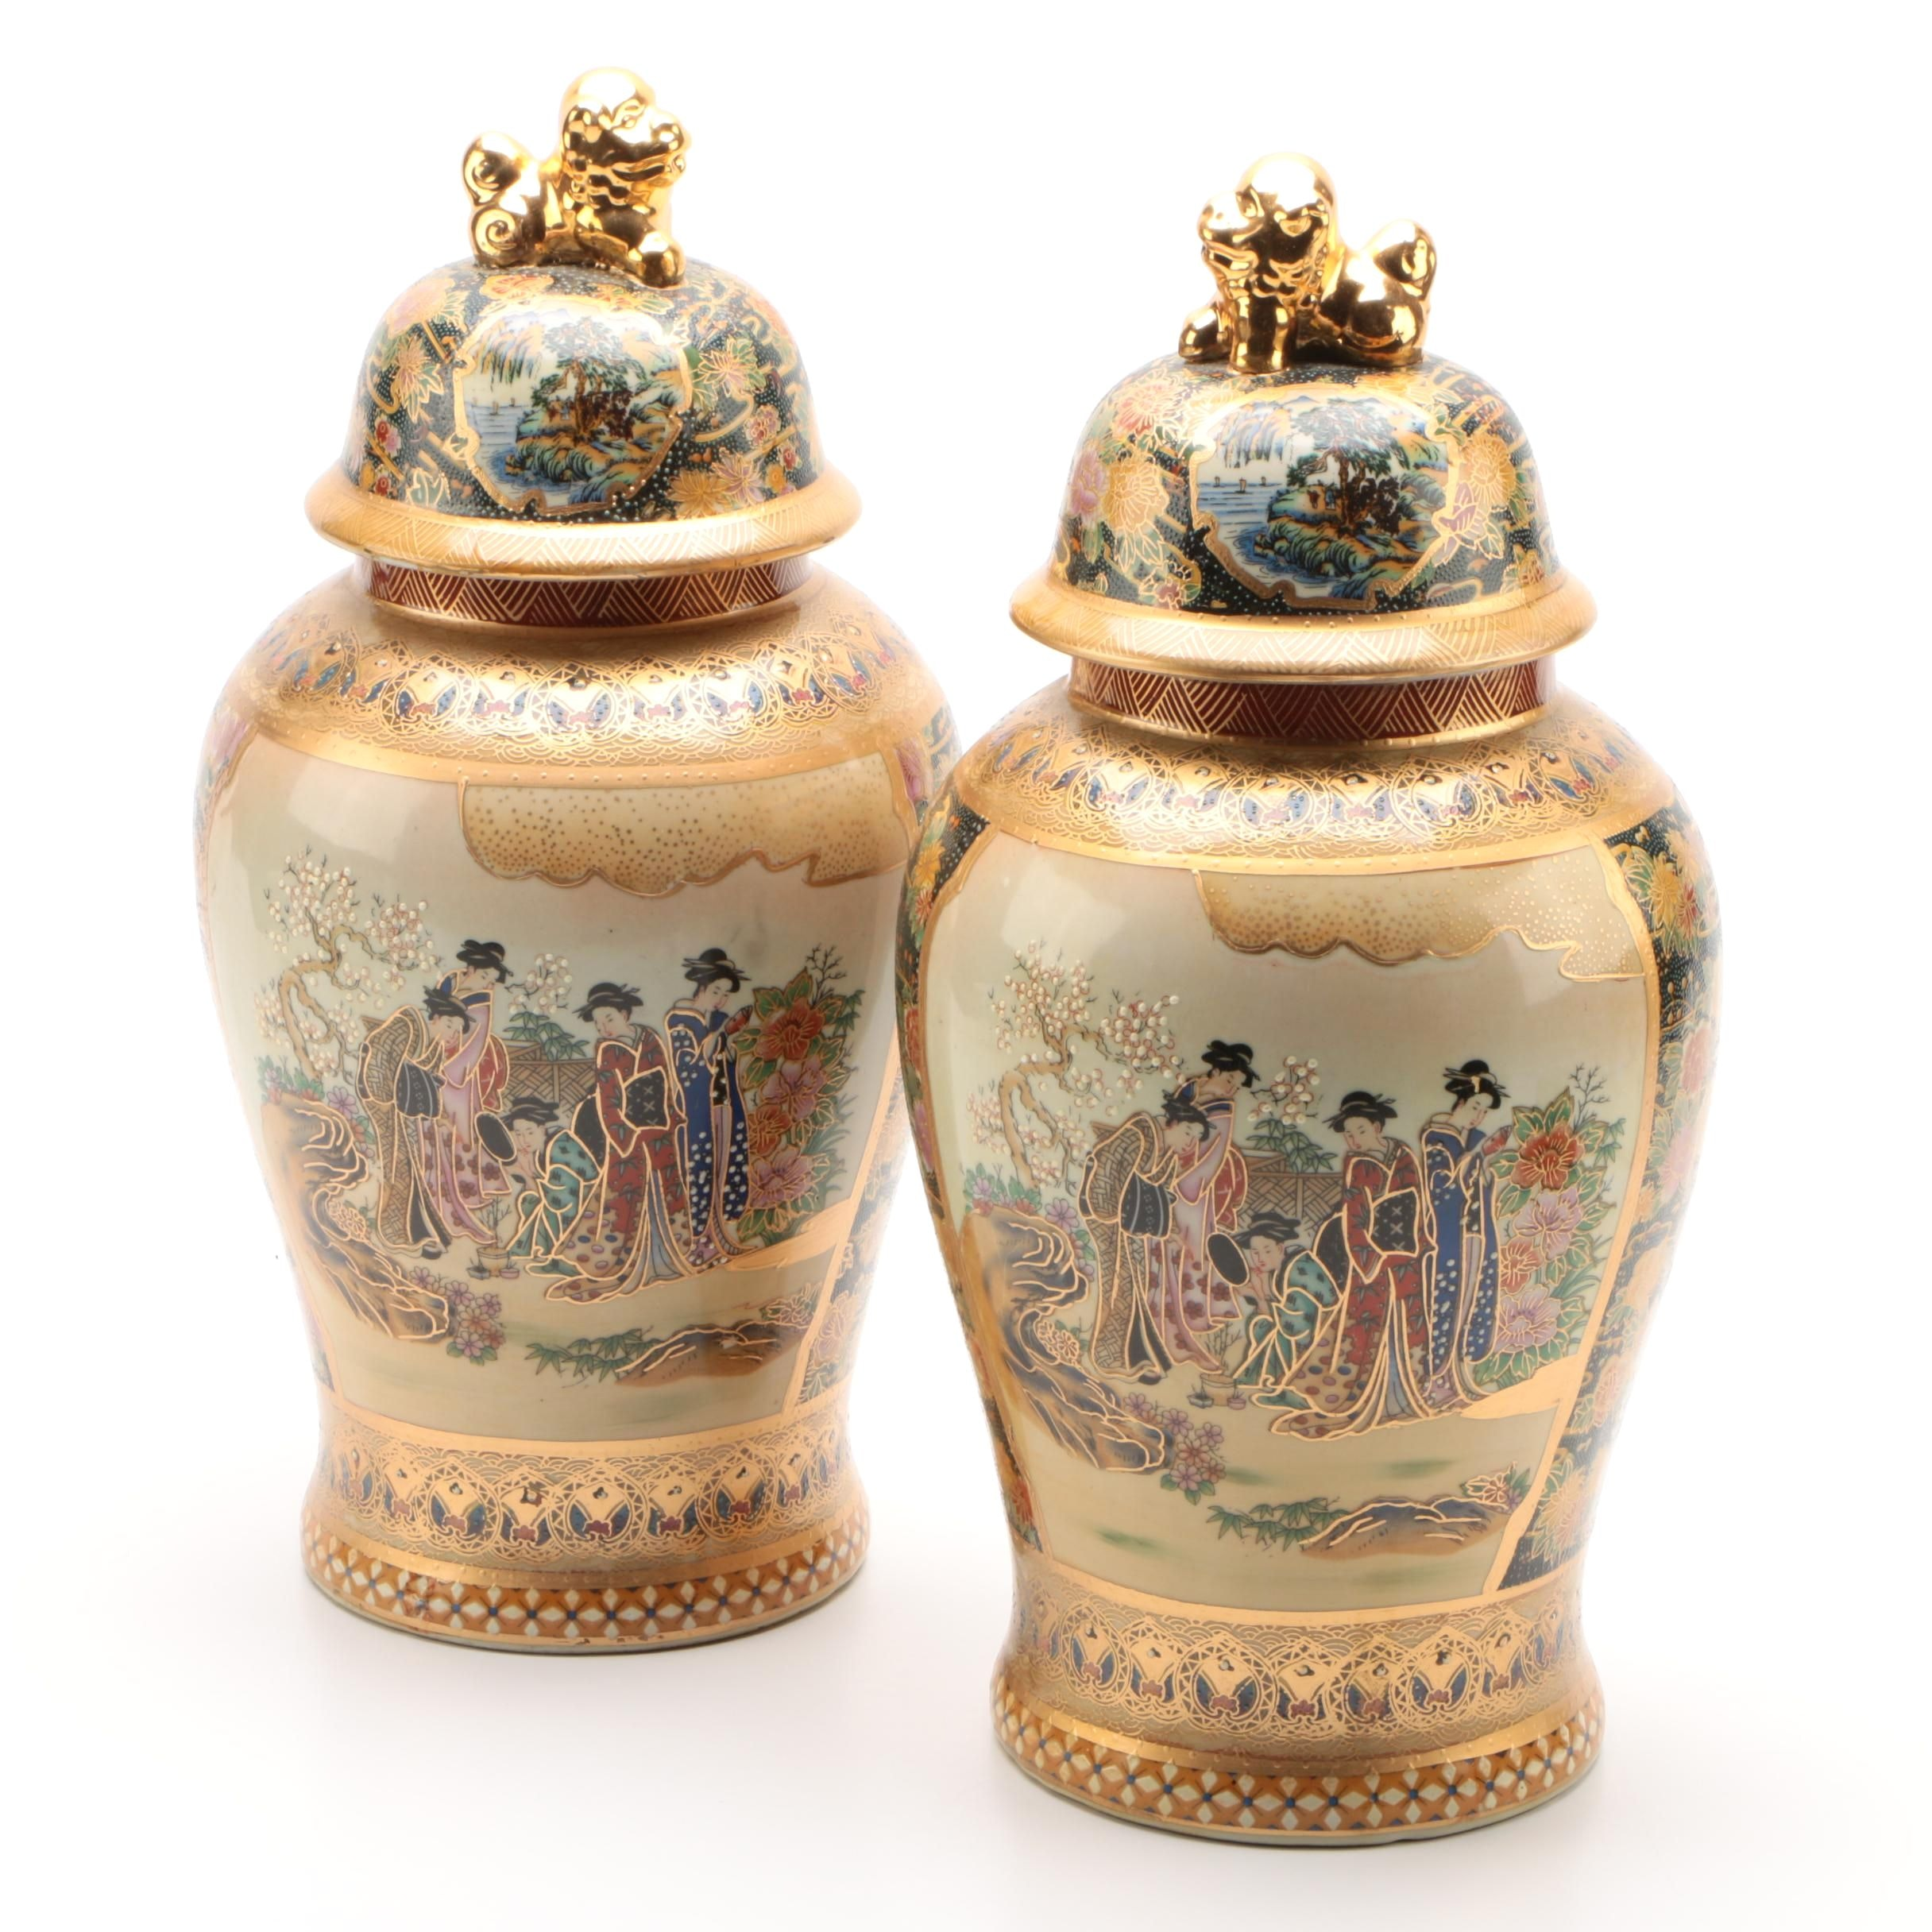 Chinese Satsuma Style Ceramic Ginger Jars with Guardian Lion Finials